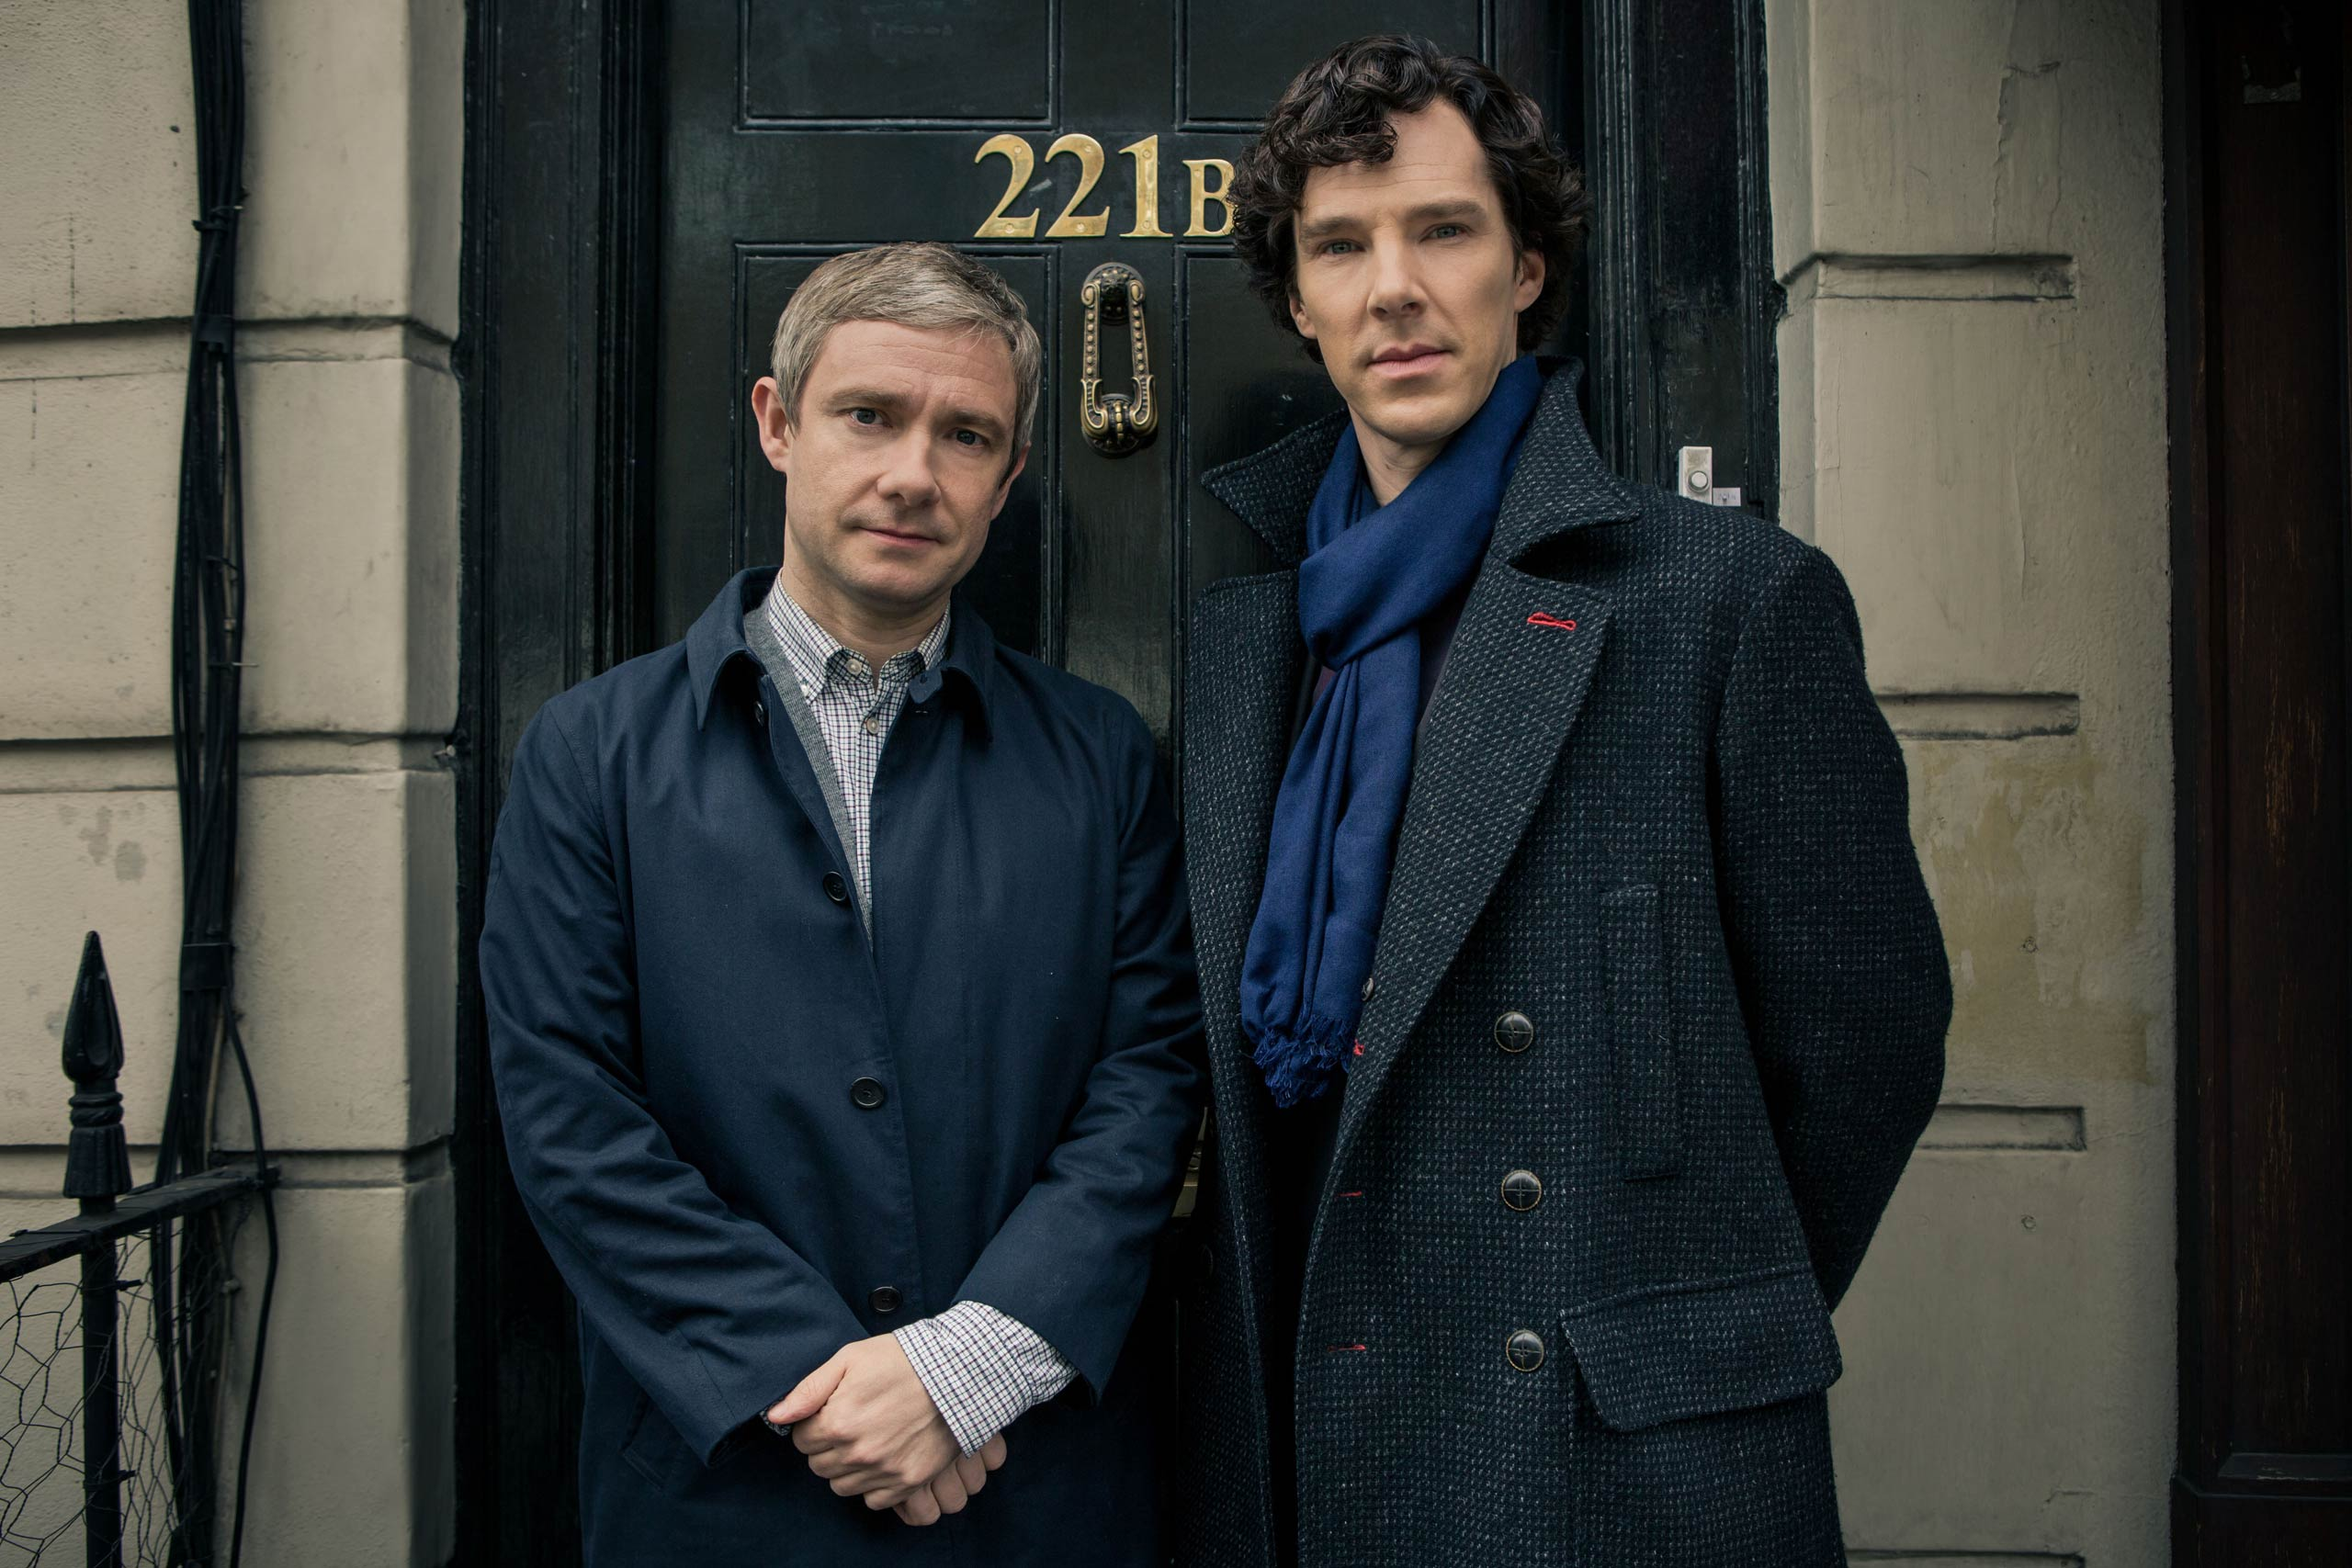 Sherlock Season 3Sundays January 19 - February 2, 201410pm ET on MASTERPIECE on PBSSherlock Holmes stalks again in a third season of the hit modern version of the Arthur Conan Doyle classic, starring Benedict Cumberbatch (War Horse) as the go-to consulting detective in 21st-century London and Martin Freeman (The Hobbit)as his loyal friend, Dr. John Watson.Shown from left to right: Martin Freeman as Dr. John Watson and Benedict Cumberbatch as Sherlock Holmes(C)Robert Viglasky/Hartswood Films for MASTERPIECEThis image may be used only in the direct promotion of MASTERPIECE. No other rights are granted. All rights are reserved. Editorial use only.